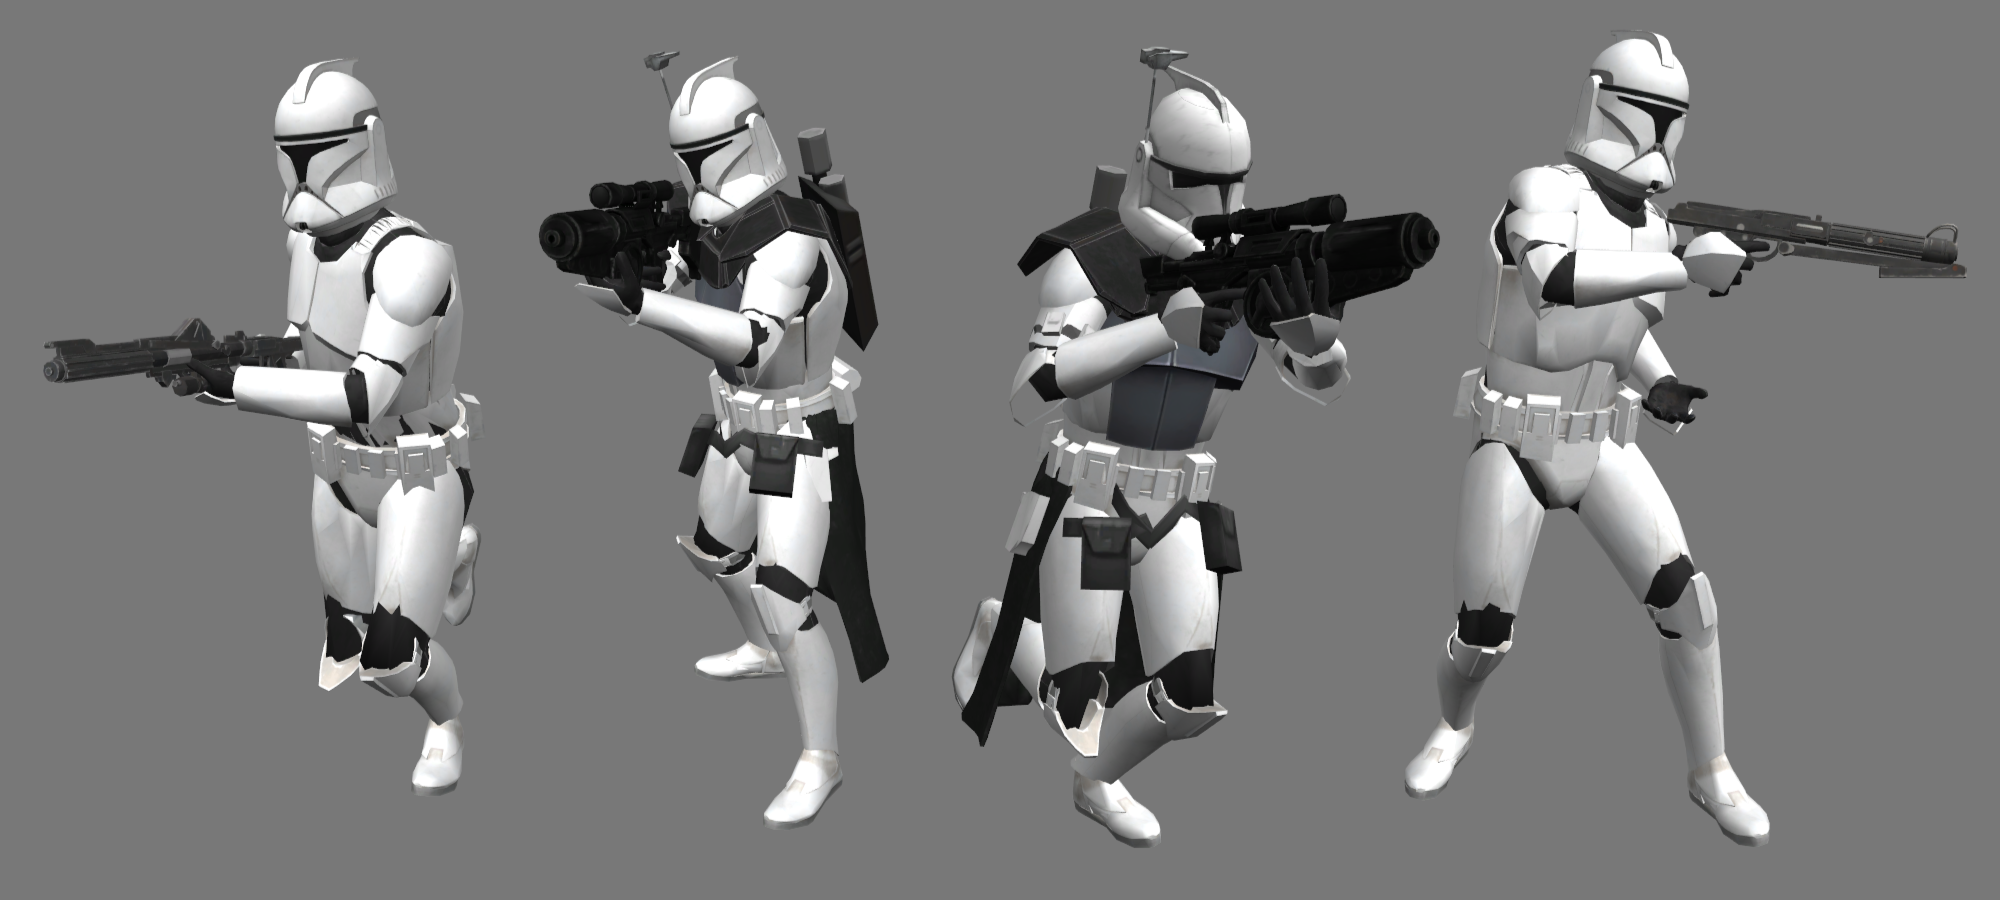 phase 1 clone troopers image mod db